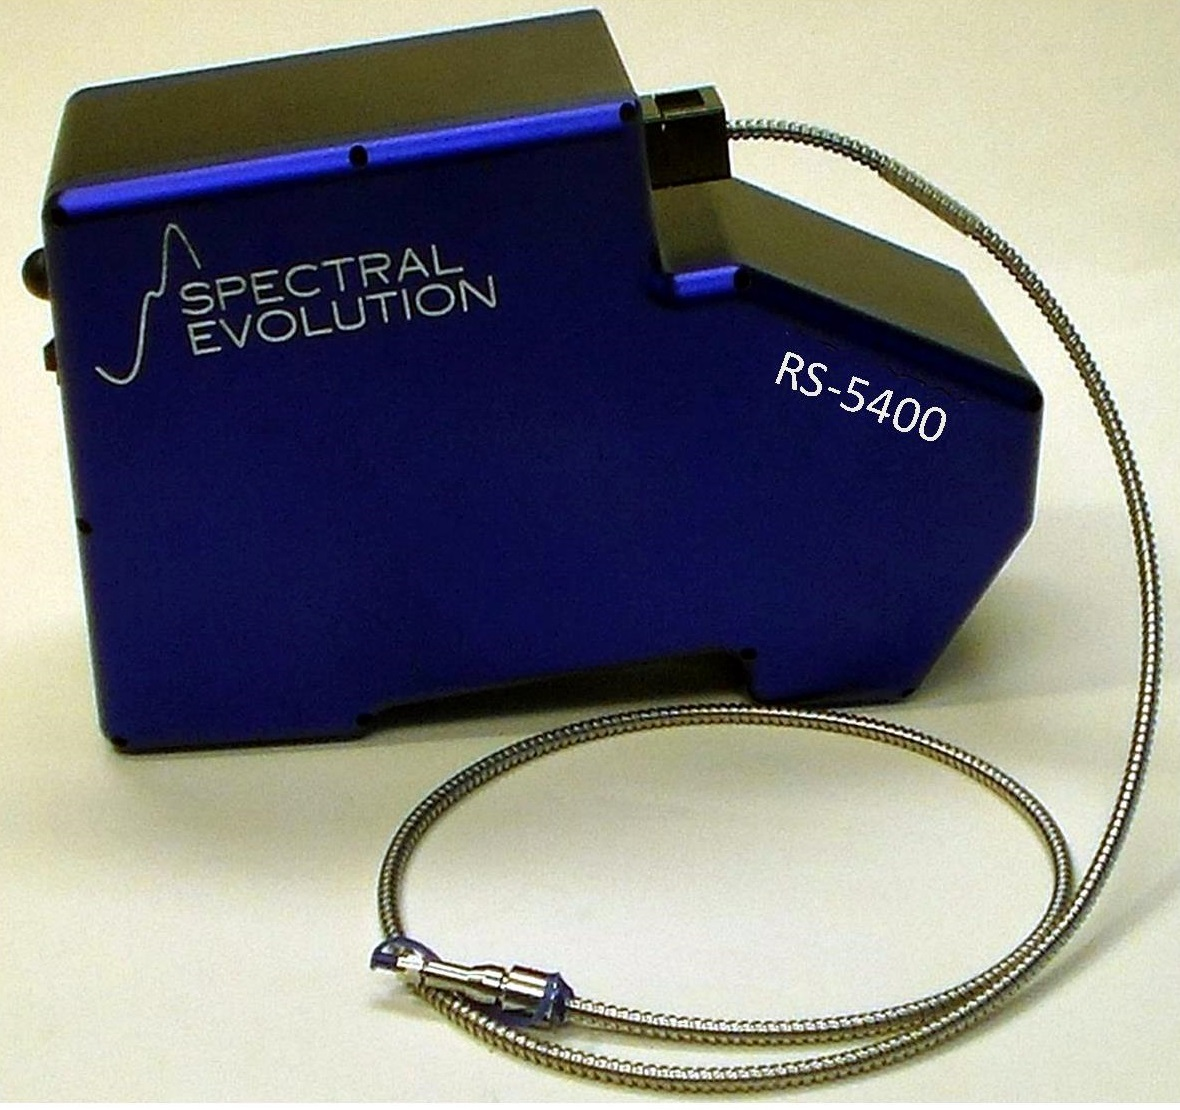 RS-5400 high resolution field spectroradiometer